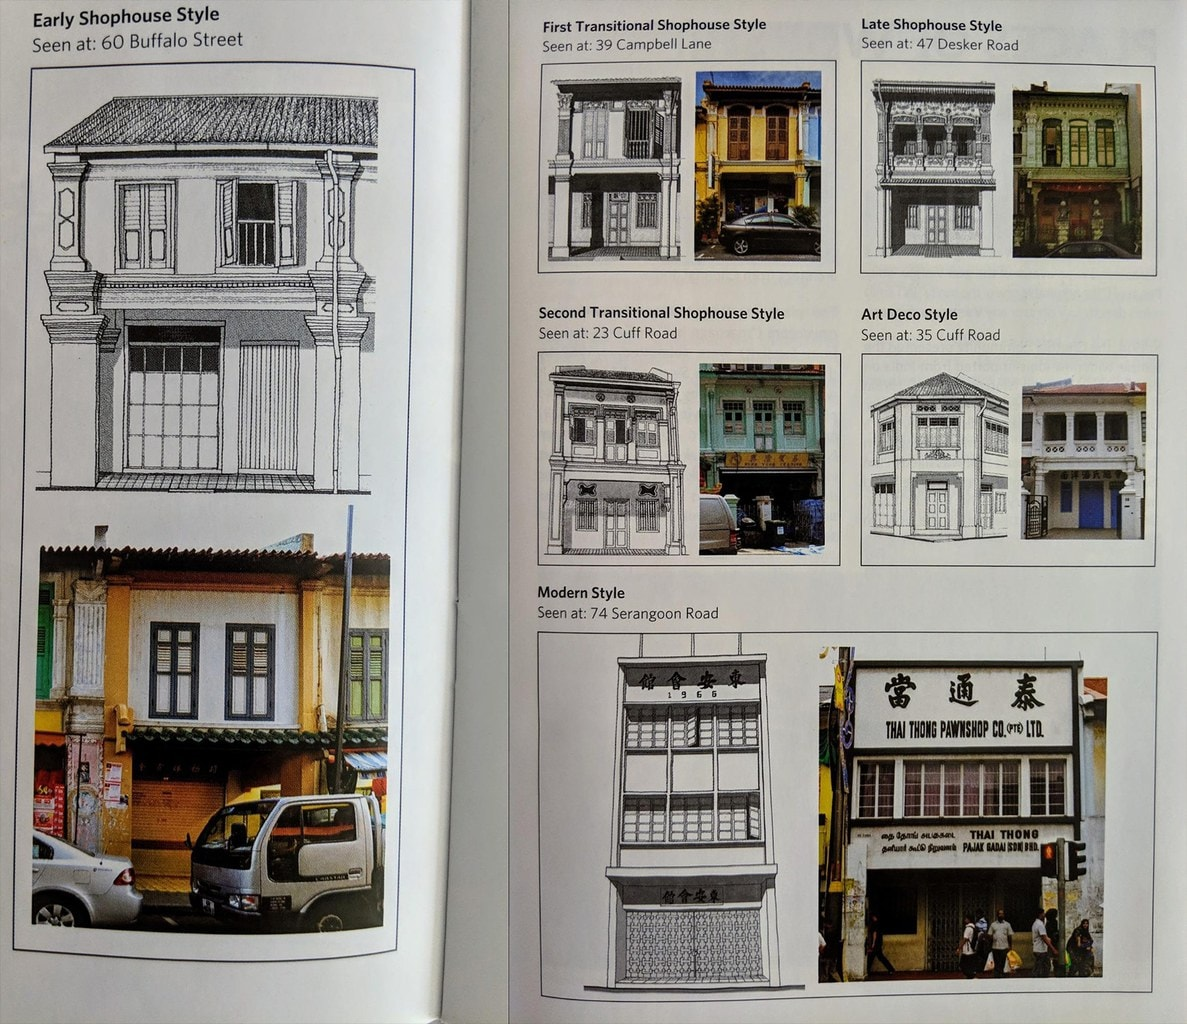 Architecture Evolution. The National Board Little India Heritage Trail booklet